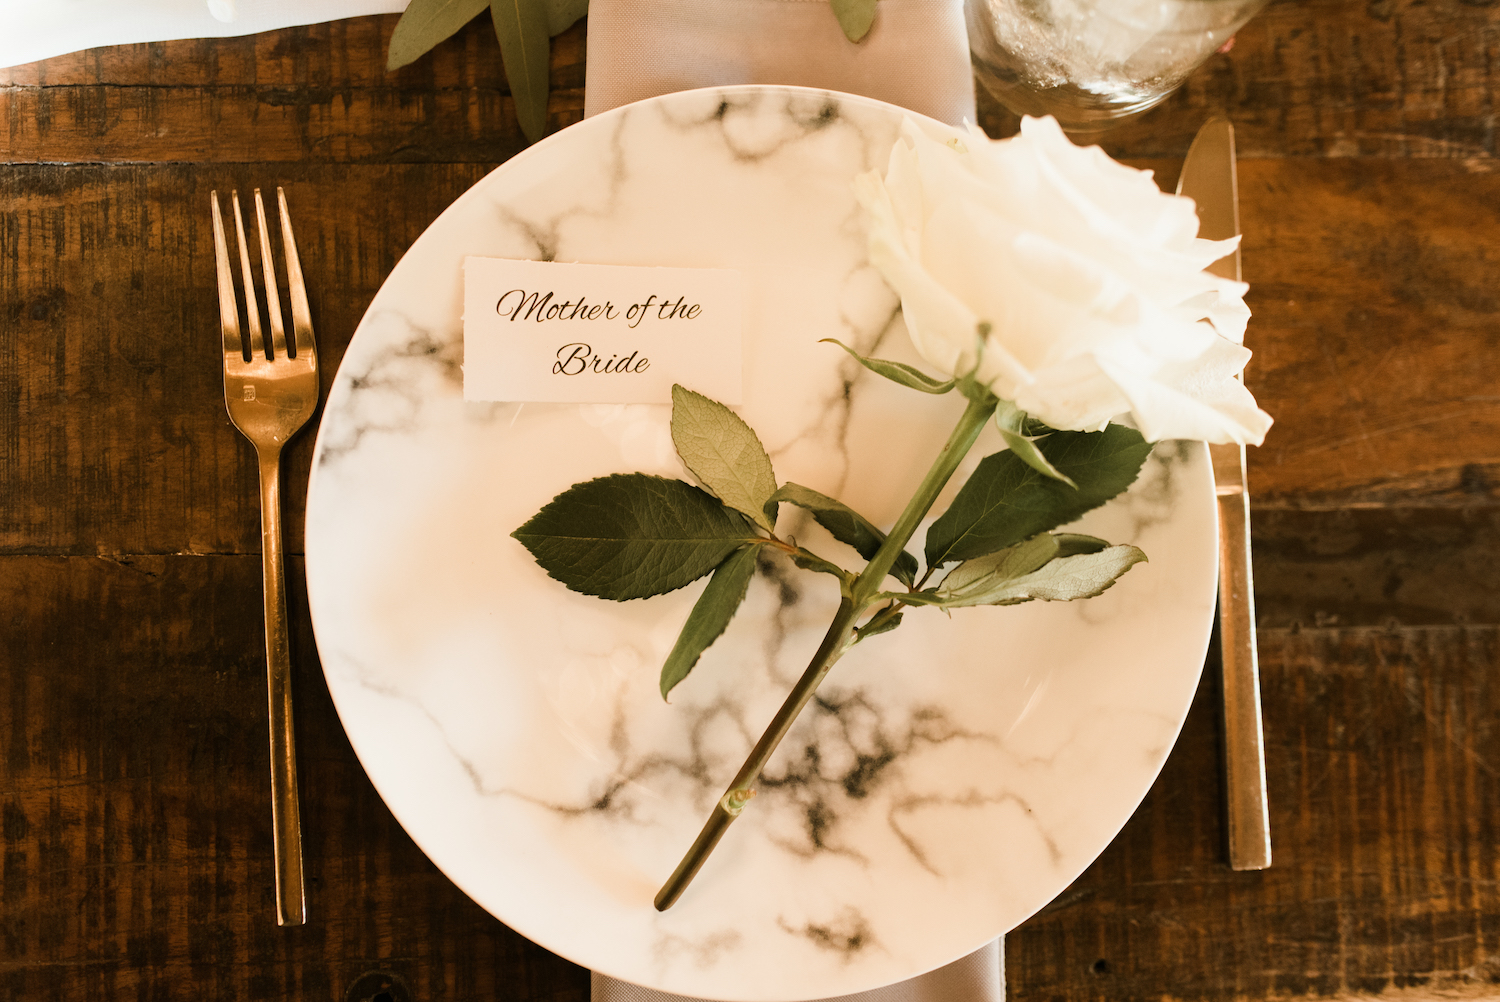 Marble Wedding Place Setting: Upscale Marble Graystone Quarry Wedding featured on Nashville Bride Guide by Shelby Rae Photographs